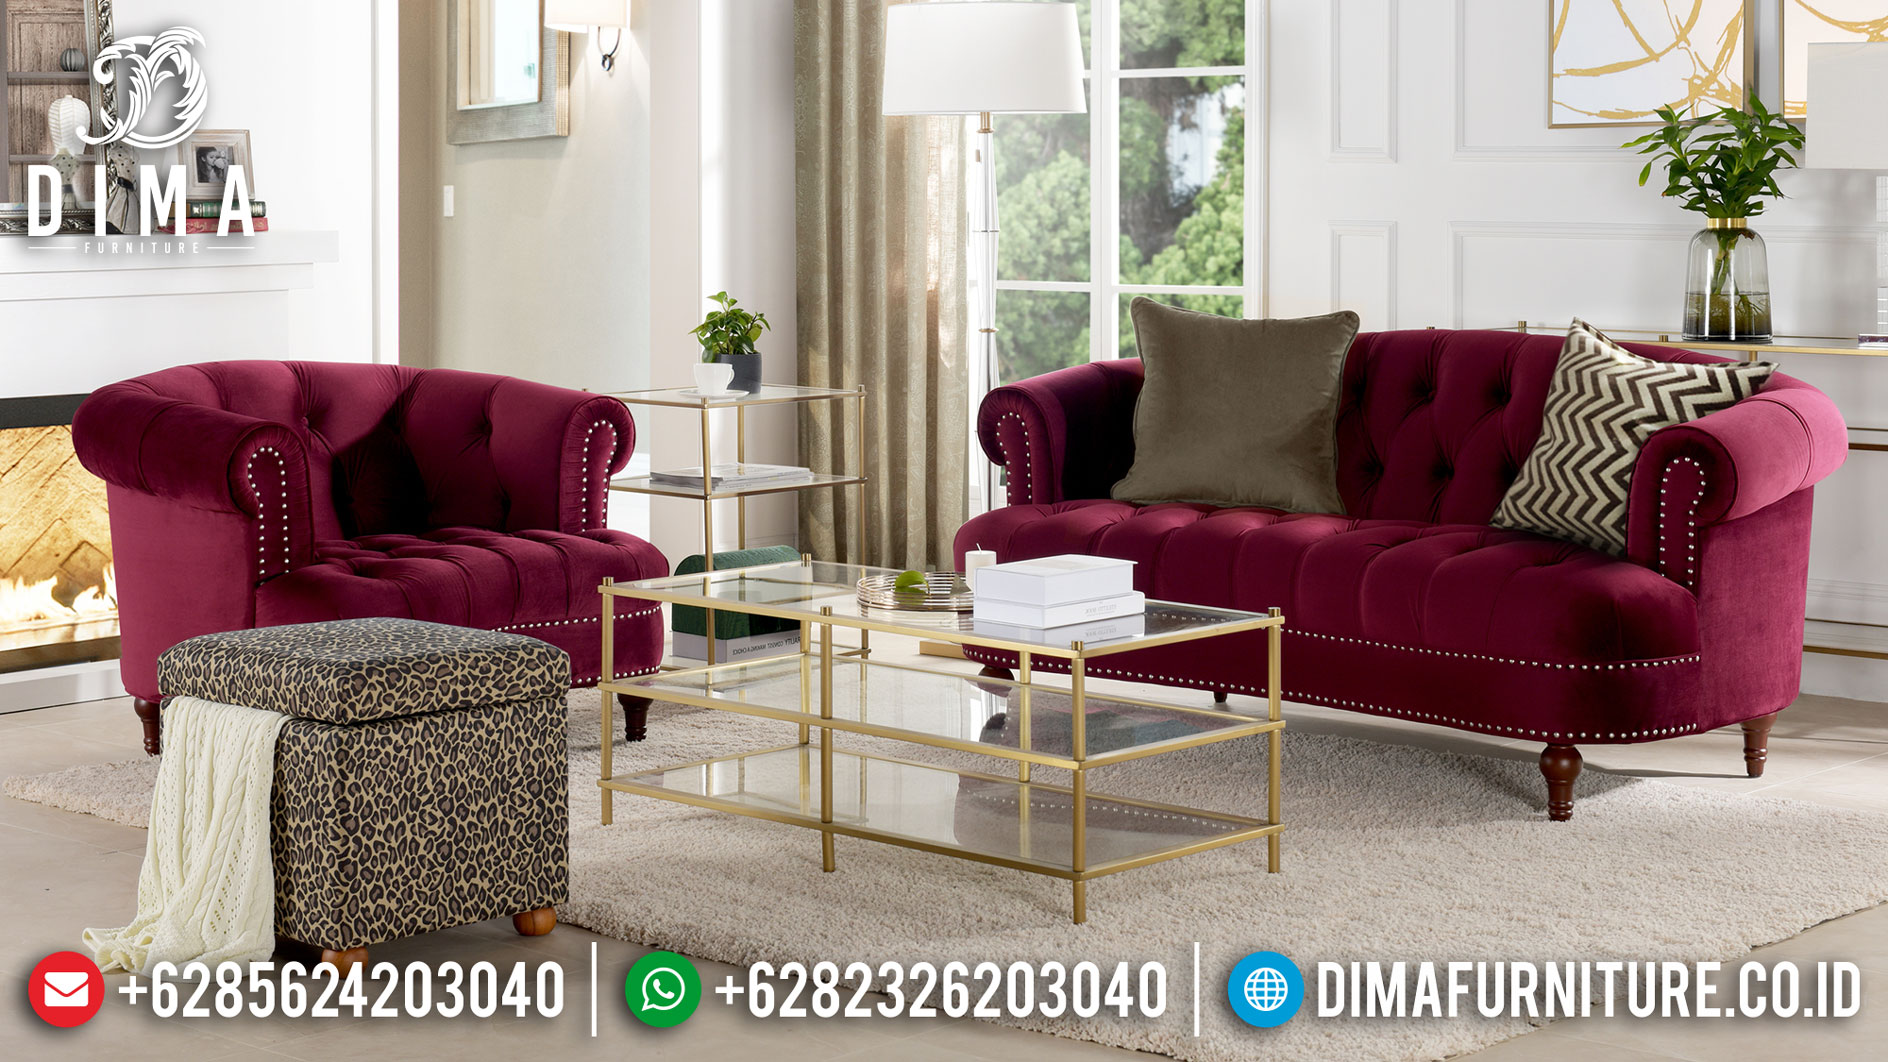 New Sofa Tamu Minimalis Modern Elegant Design Furniture Jepara TTJ-1061